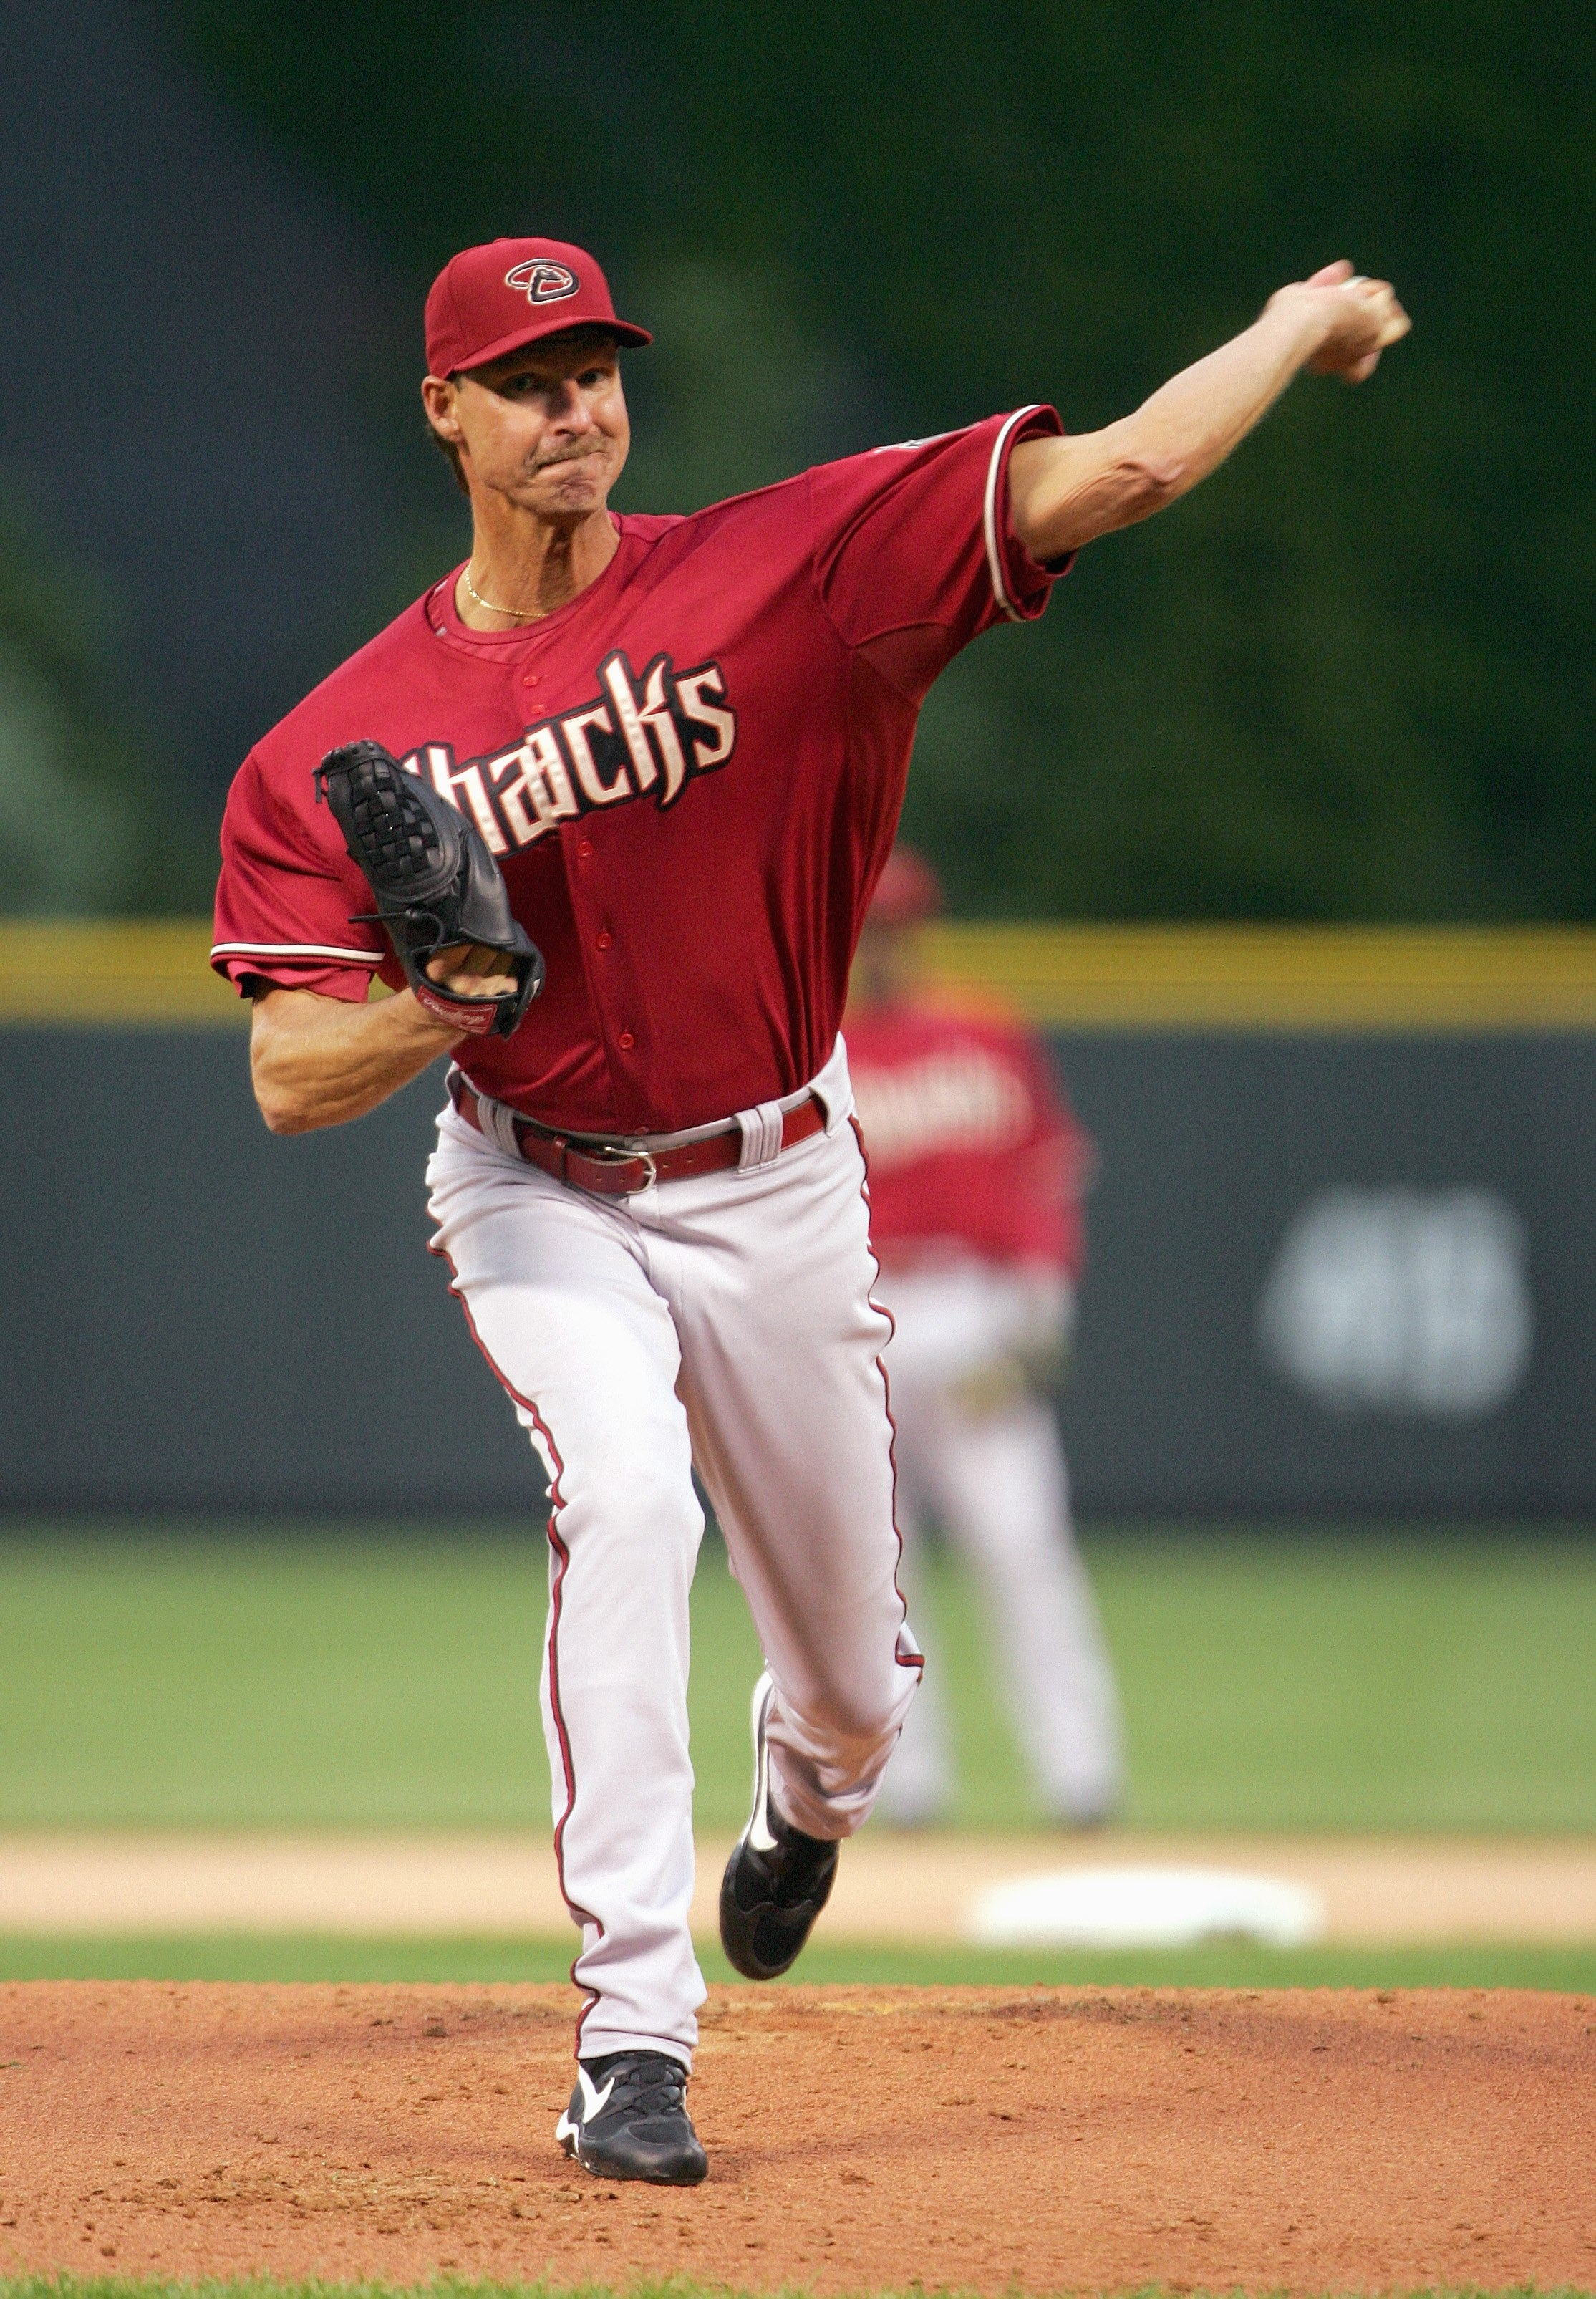 DENVER - MAY 15: Starting pitcher Randy Johnson #51 of the Arizona Diamondbacks delivers the pitch against the Colorado Rockies on May 15, 2007 at Coors Field in Denver, Colorado. (Photo by Doug Pensinger/Getty Images)